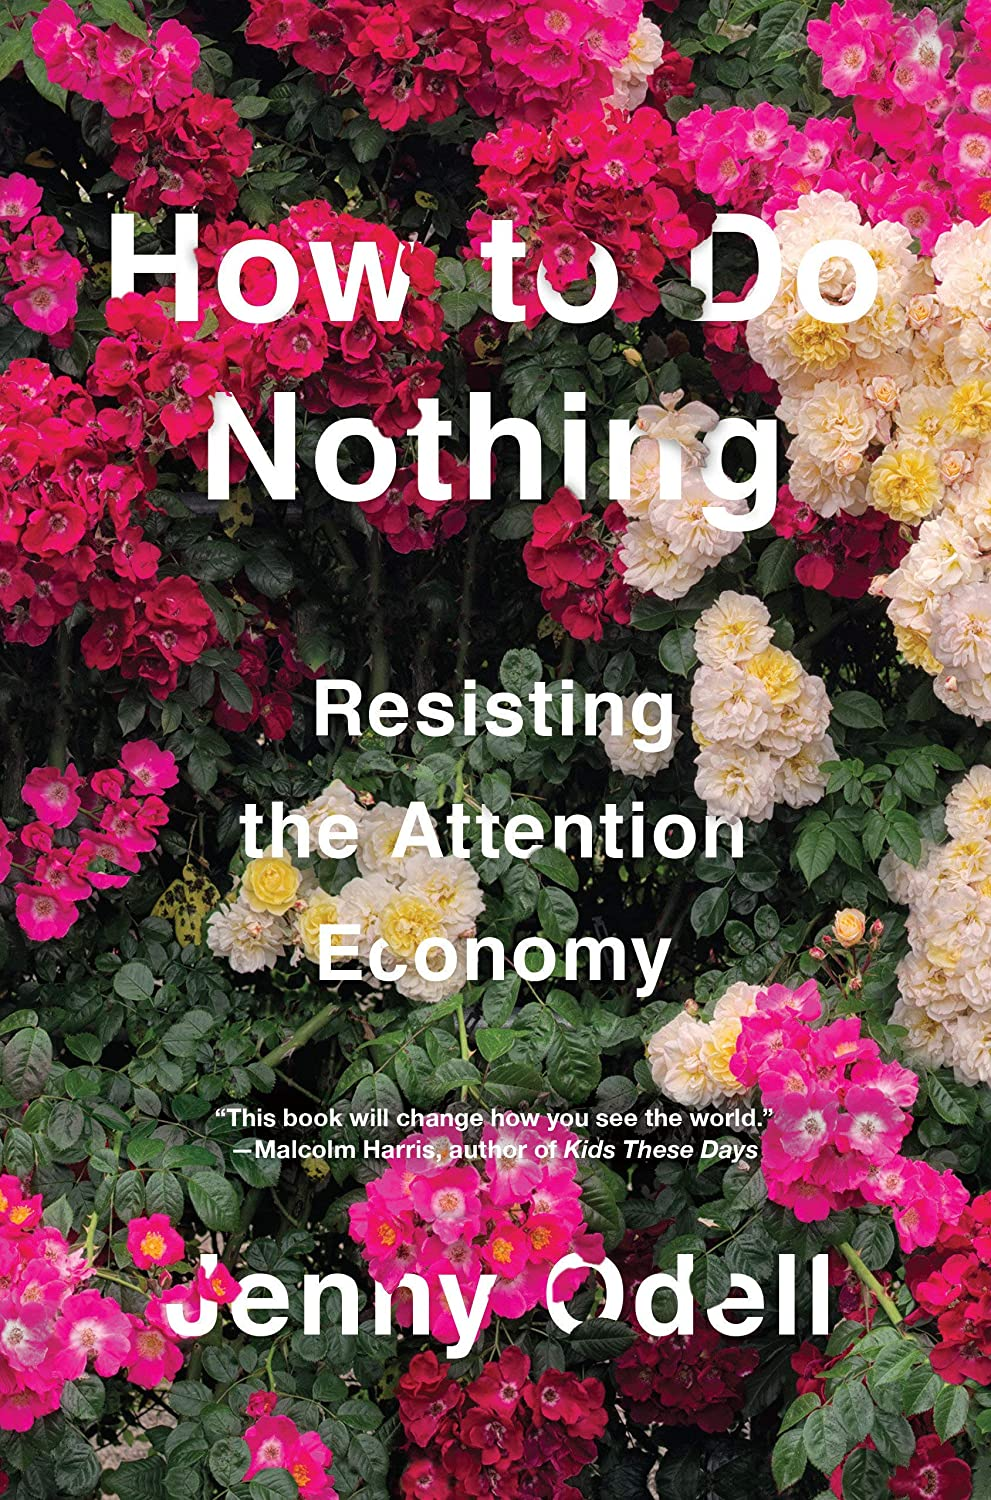 'How to Do Nothing: Resisting the Attention Economy' by Jenny Odell